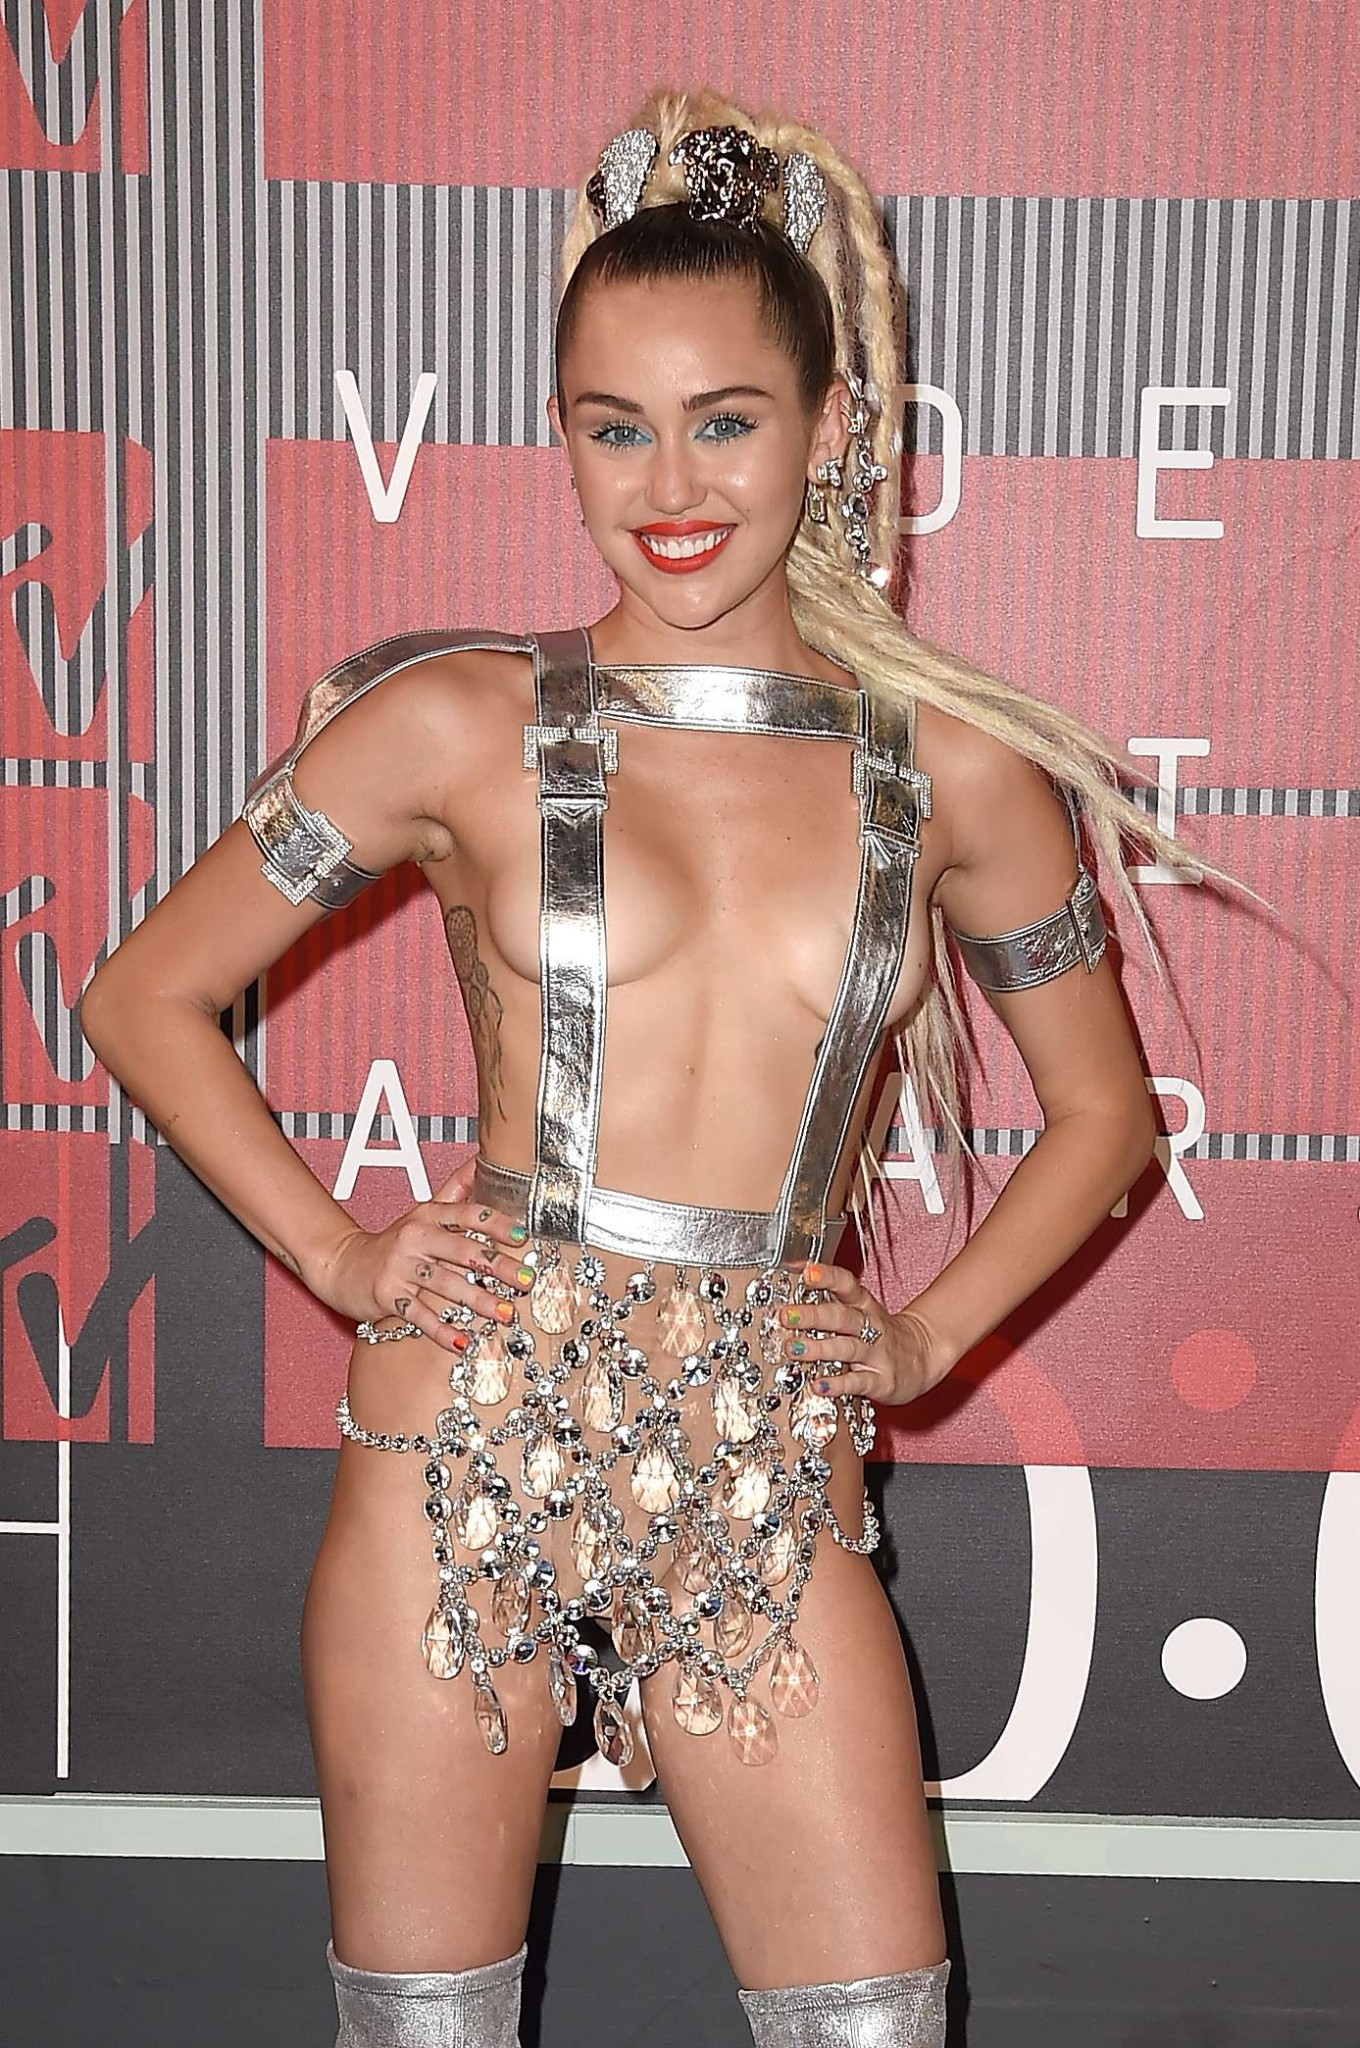 Miley cyrus hot naked ass pics apologise, but